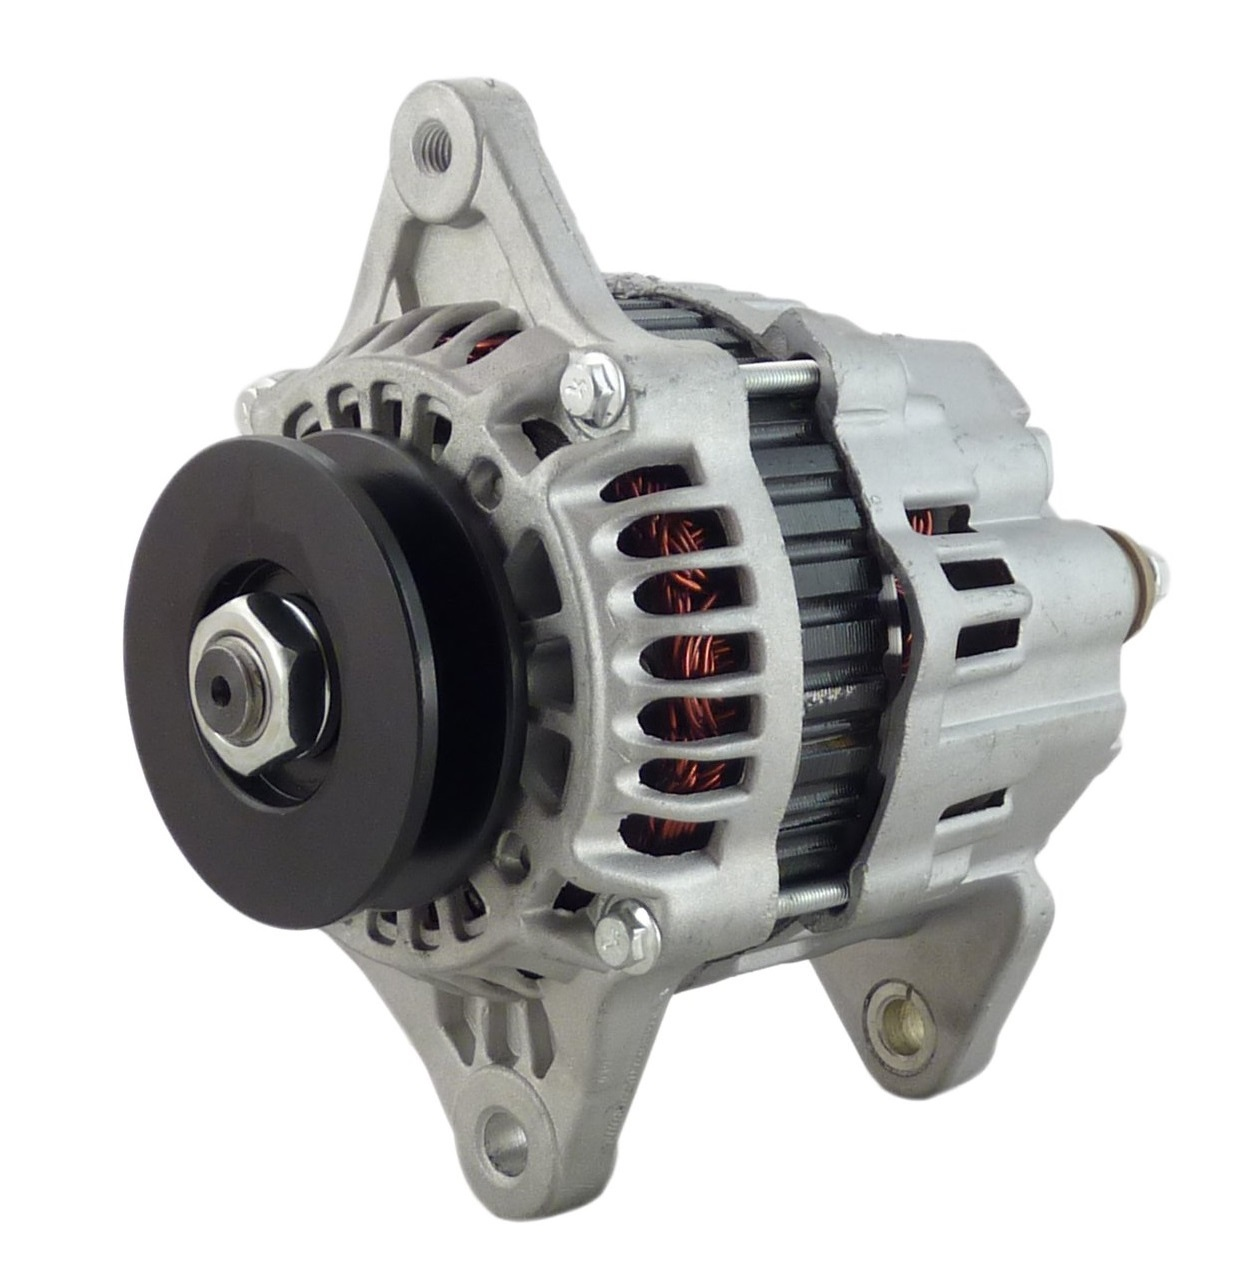 Forklift Alternator for Hyster A7T03277 A7T03277A A7TA2283 7000215 1361853 1450928 3068342 3123908 800045600 S5SN-18-300 S5SN-18-300A 00591-33580-81 00591-55973-81 1500145-04 2690027-70 5059605-6